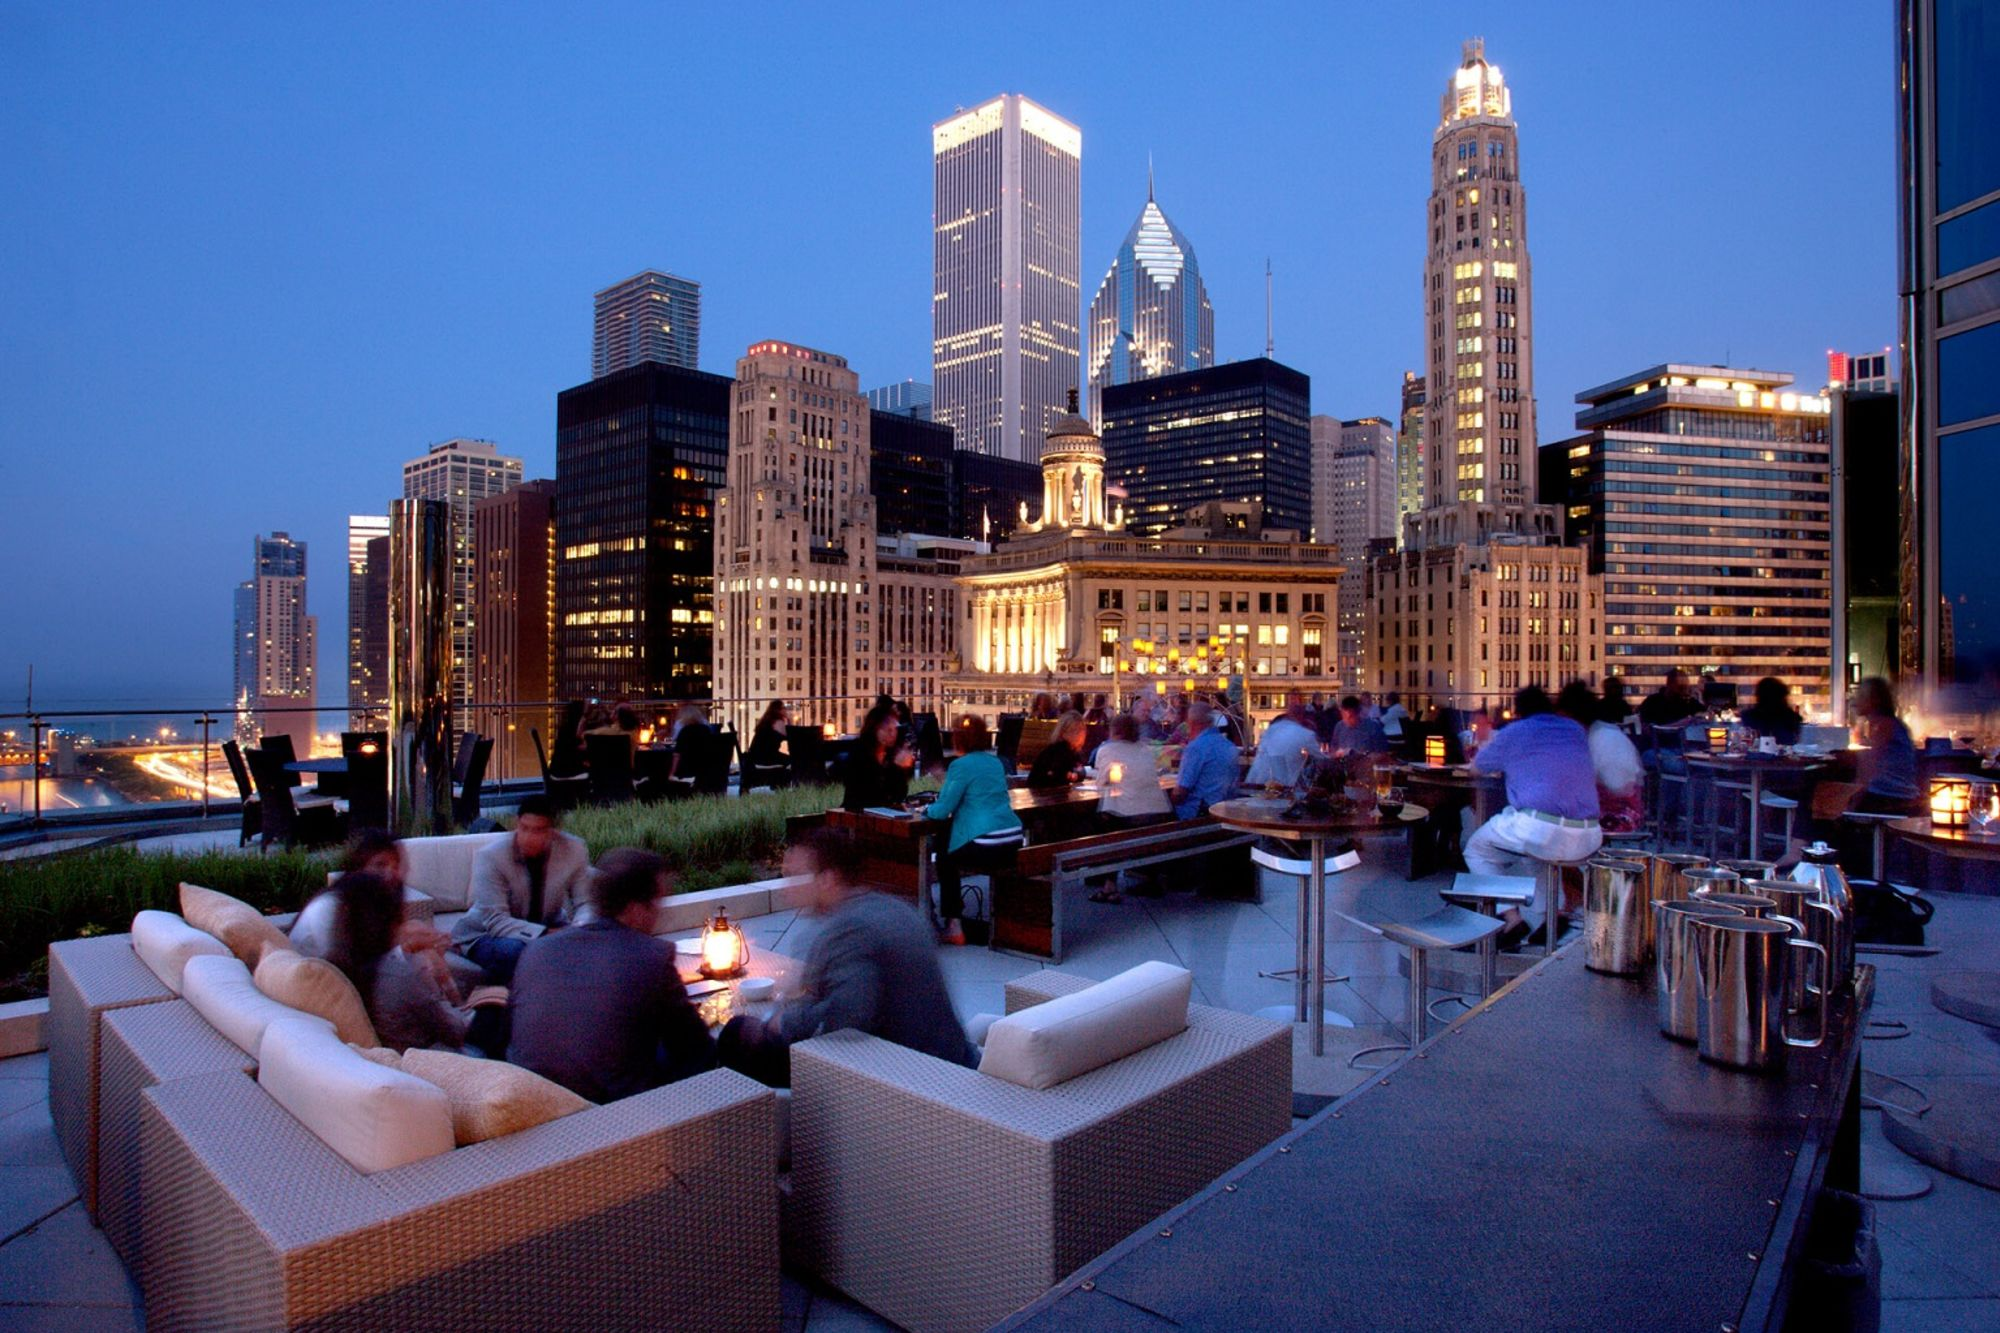 Terrace 16 Rooftop Restaurant in Chicago